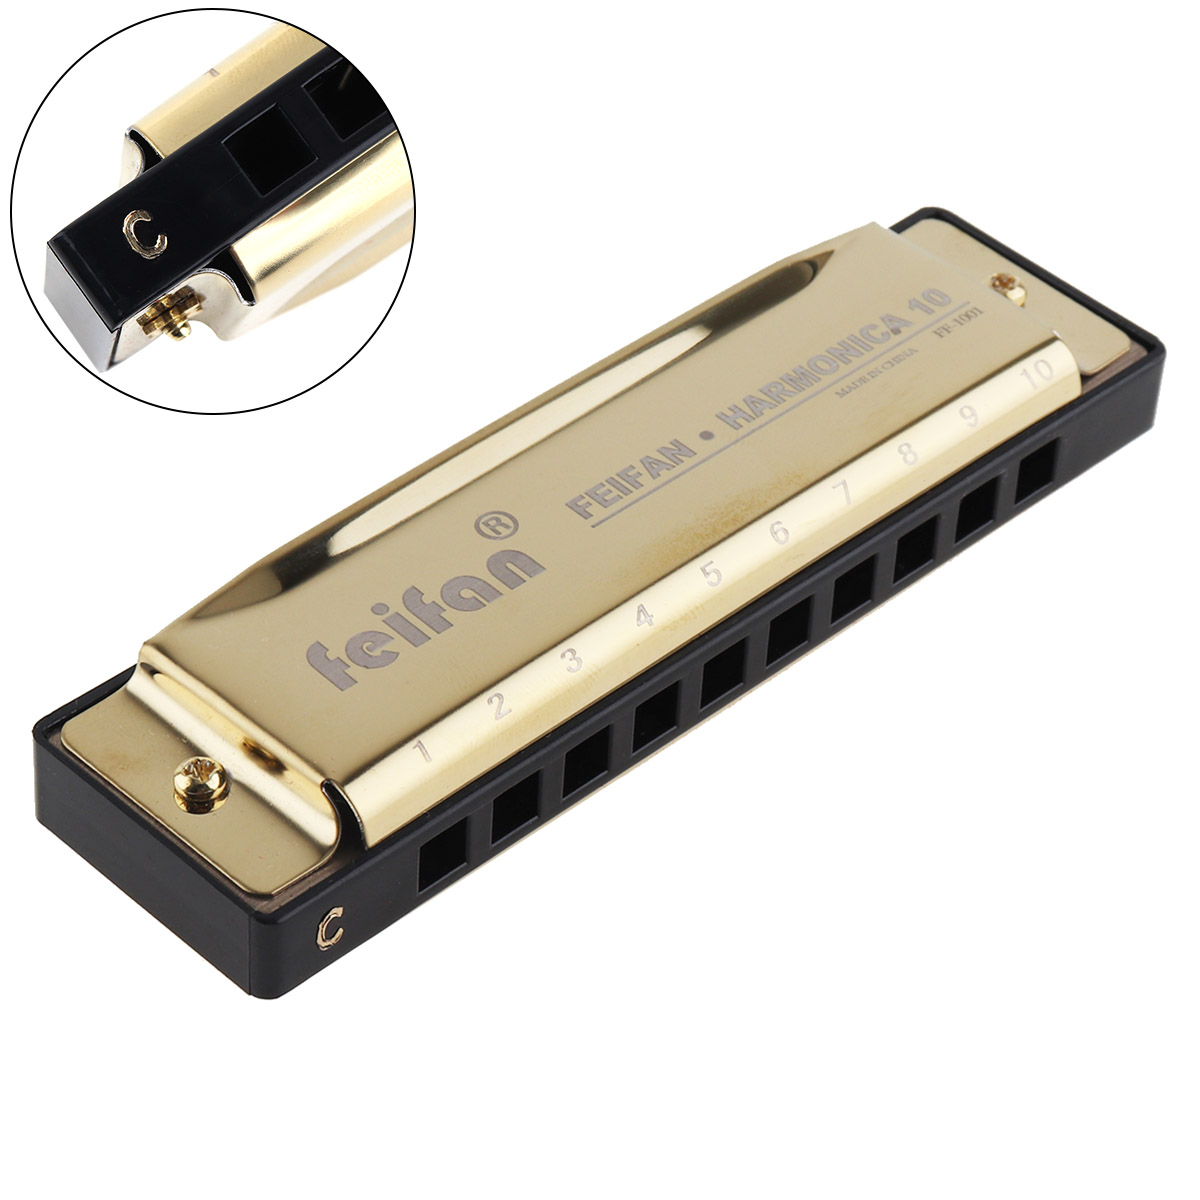 10 Holes 20 Tone Matte Gold/Black Portable Harmonica Blues Harp Mouth Organ Stainless Steel Musical Instrument For Beginner